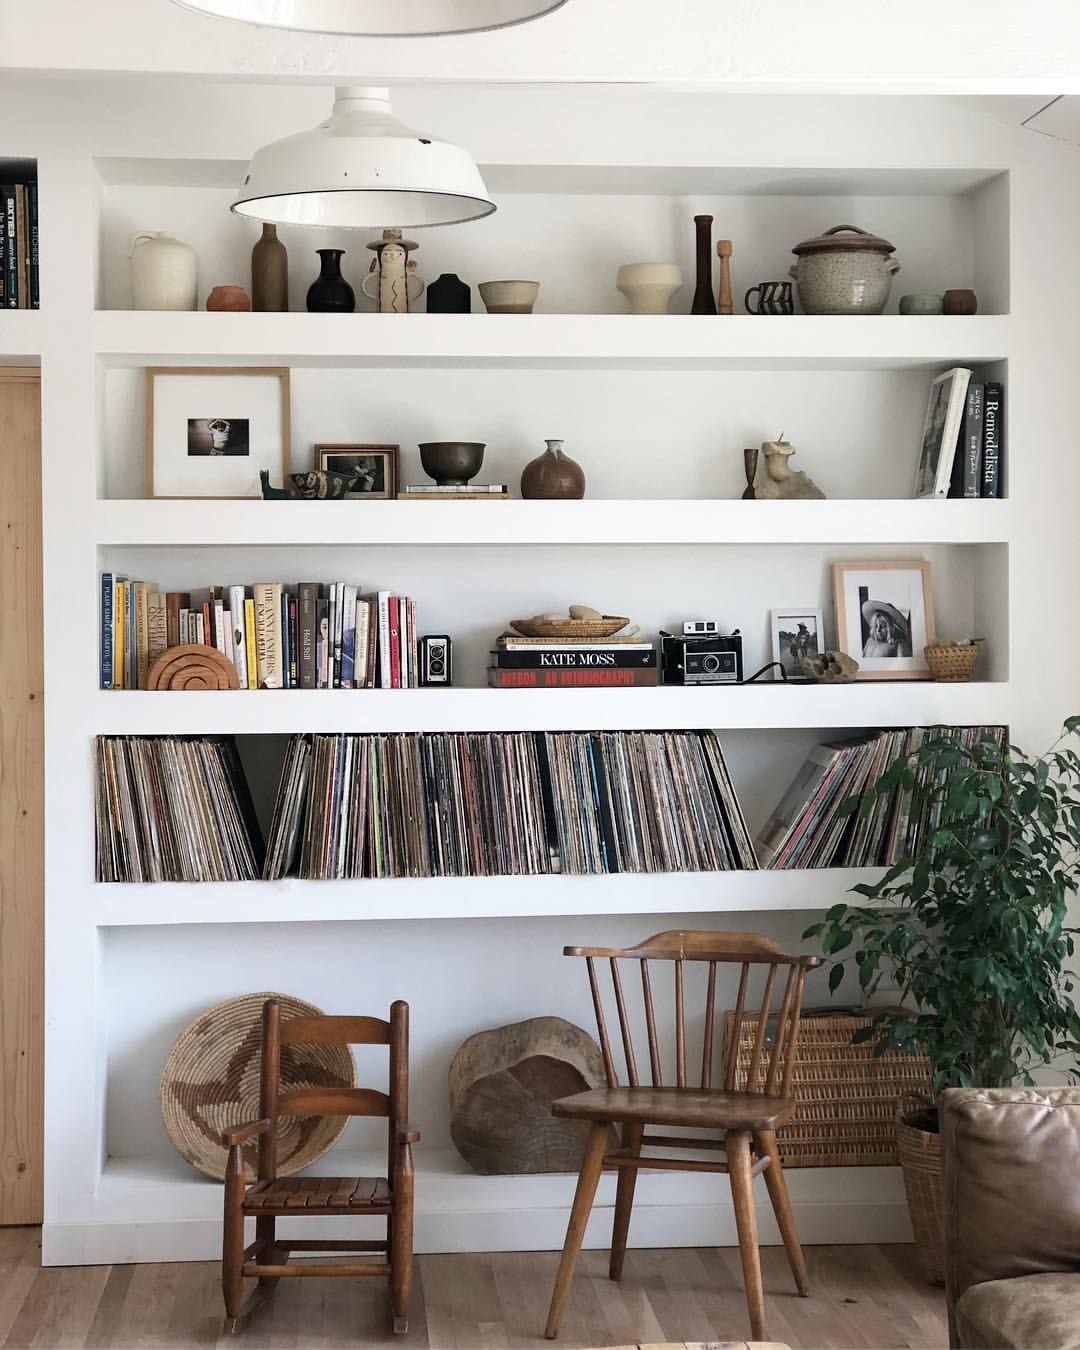 Jessica Reed Kraus On Instagram Living For The Leftovers Today And A Quiet Day At Home Ignoring Sales An Bookshelf Design Interior Scandinavian Bookshelves